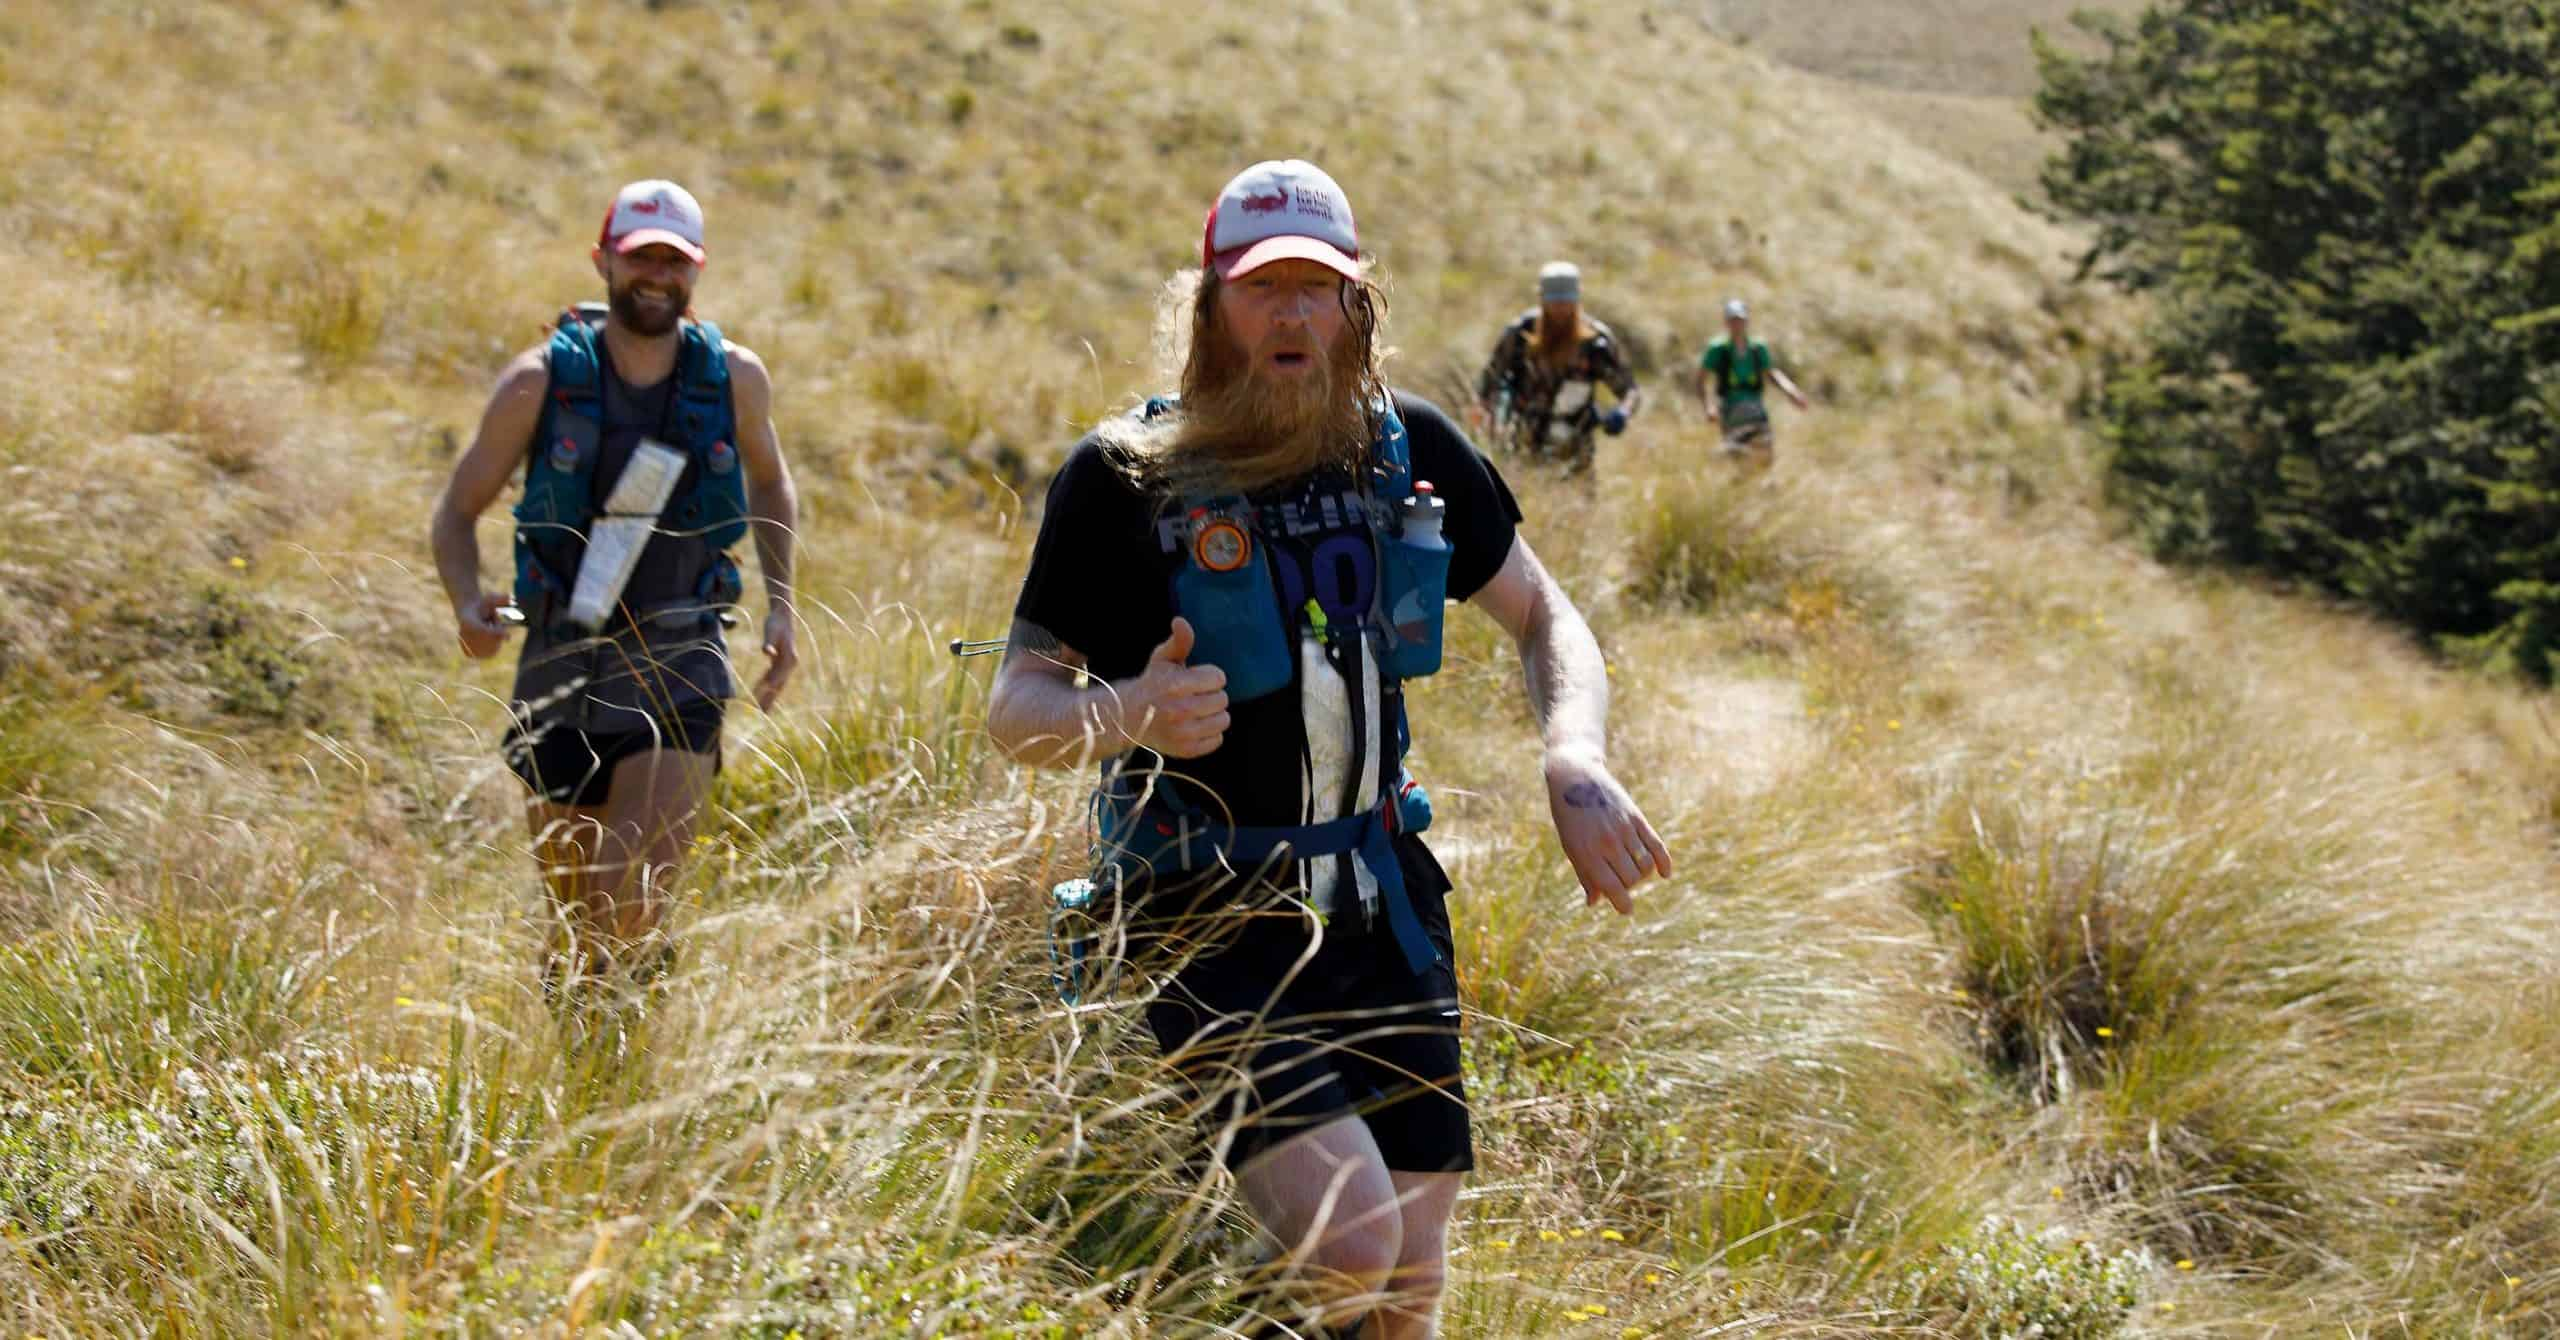 Four runners in hip-high tussocks on the Water Race trail in the Revenant Ultra Adventure Run.